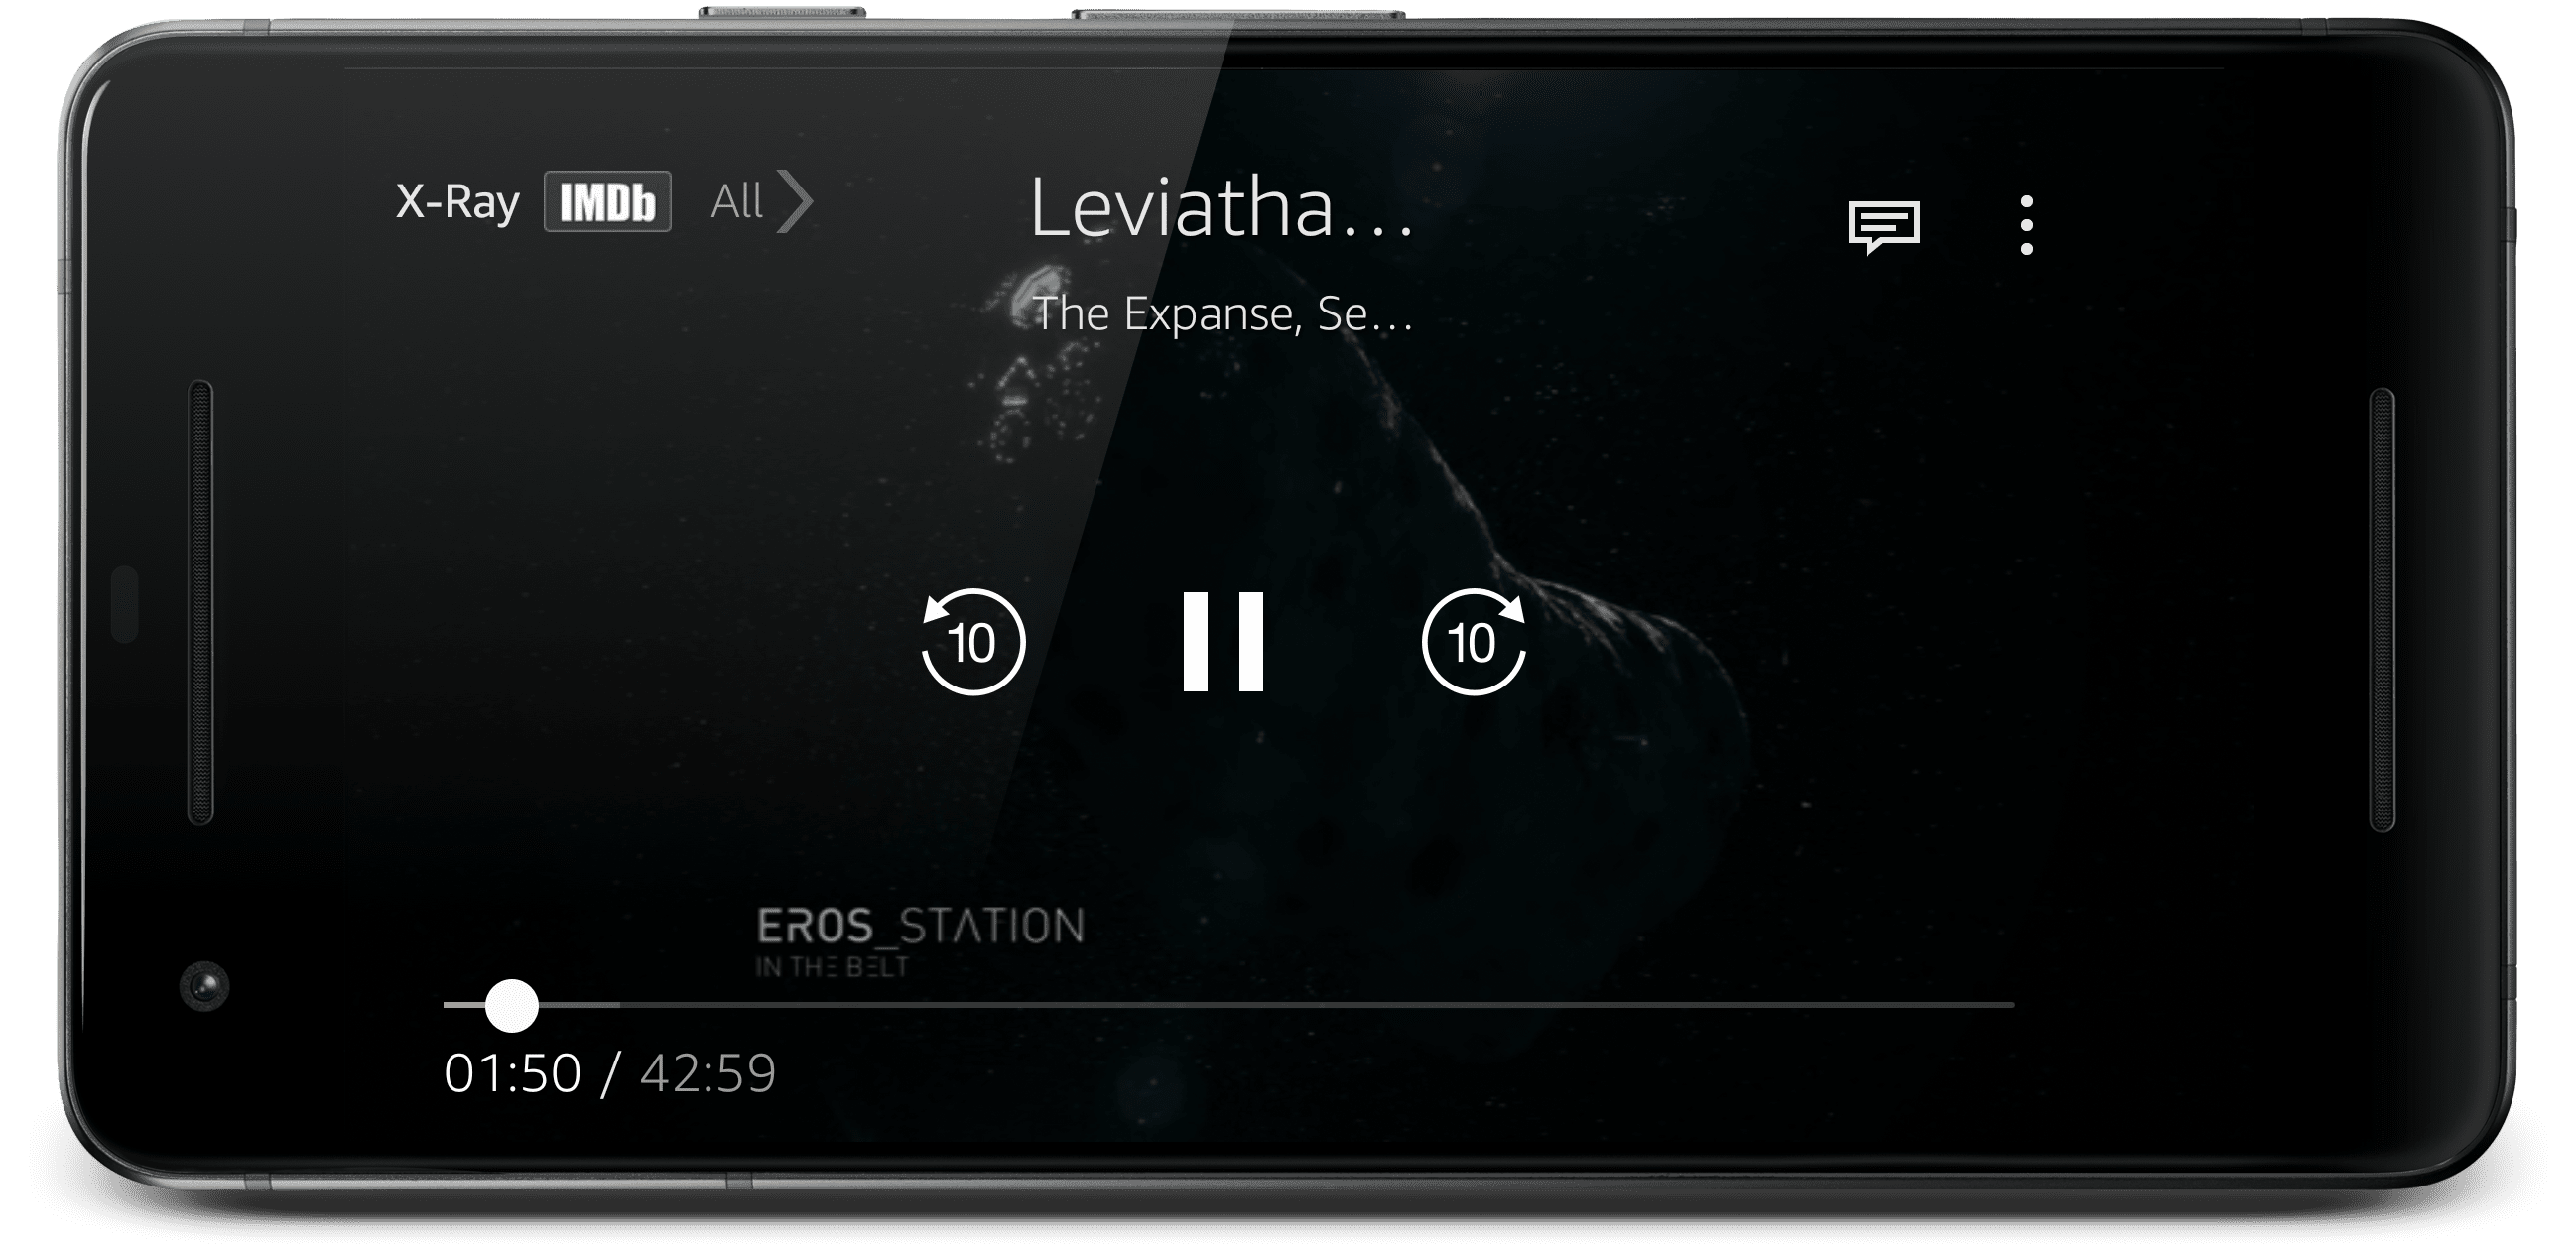 Amazon Original The Expanse viewed on a smartphone.